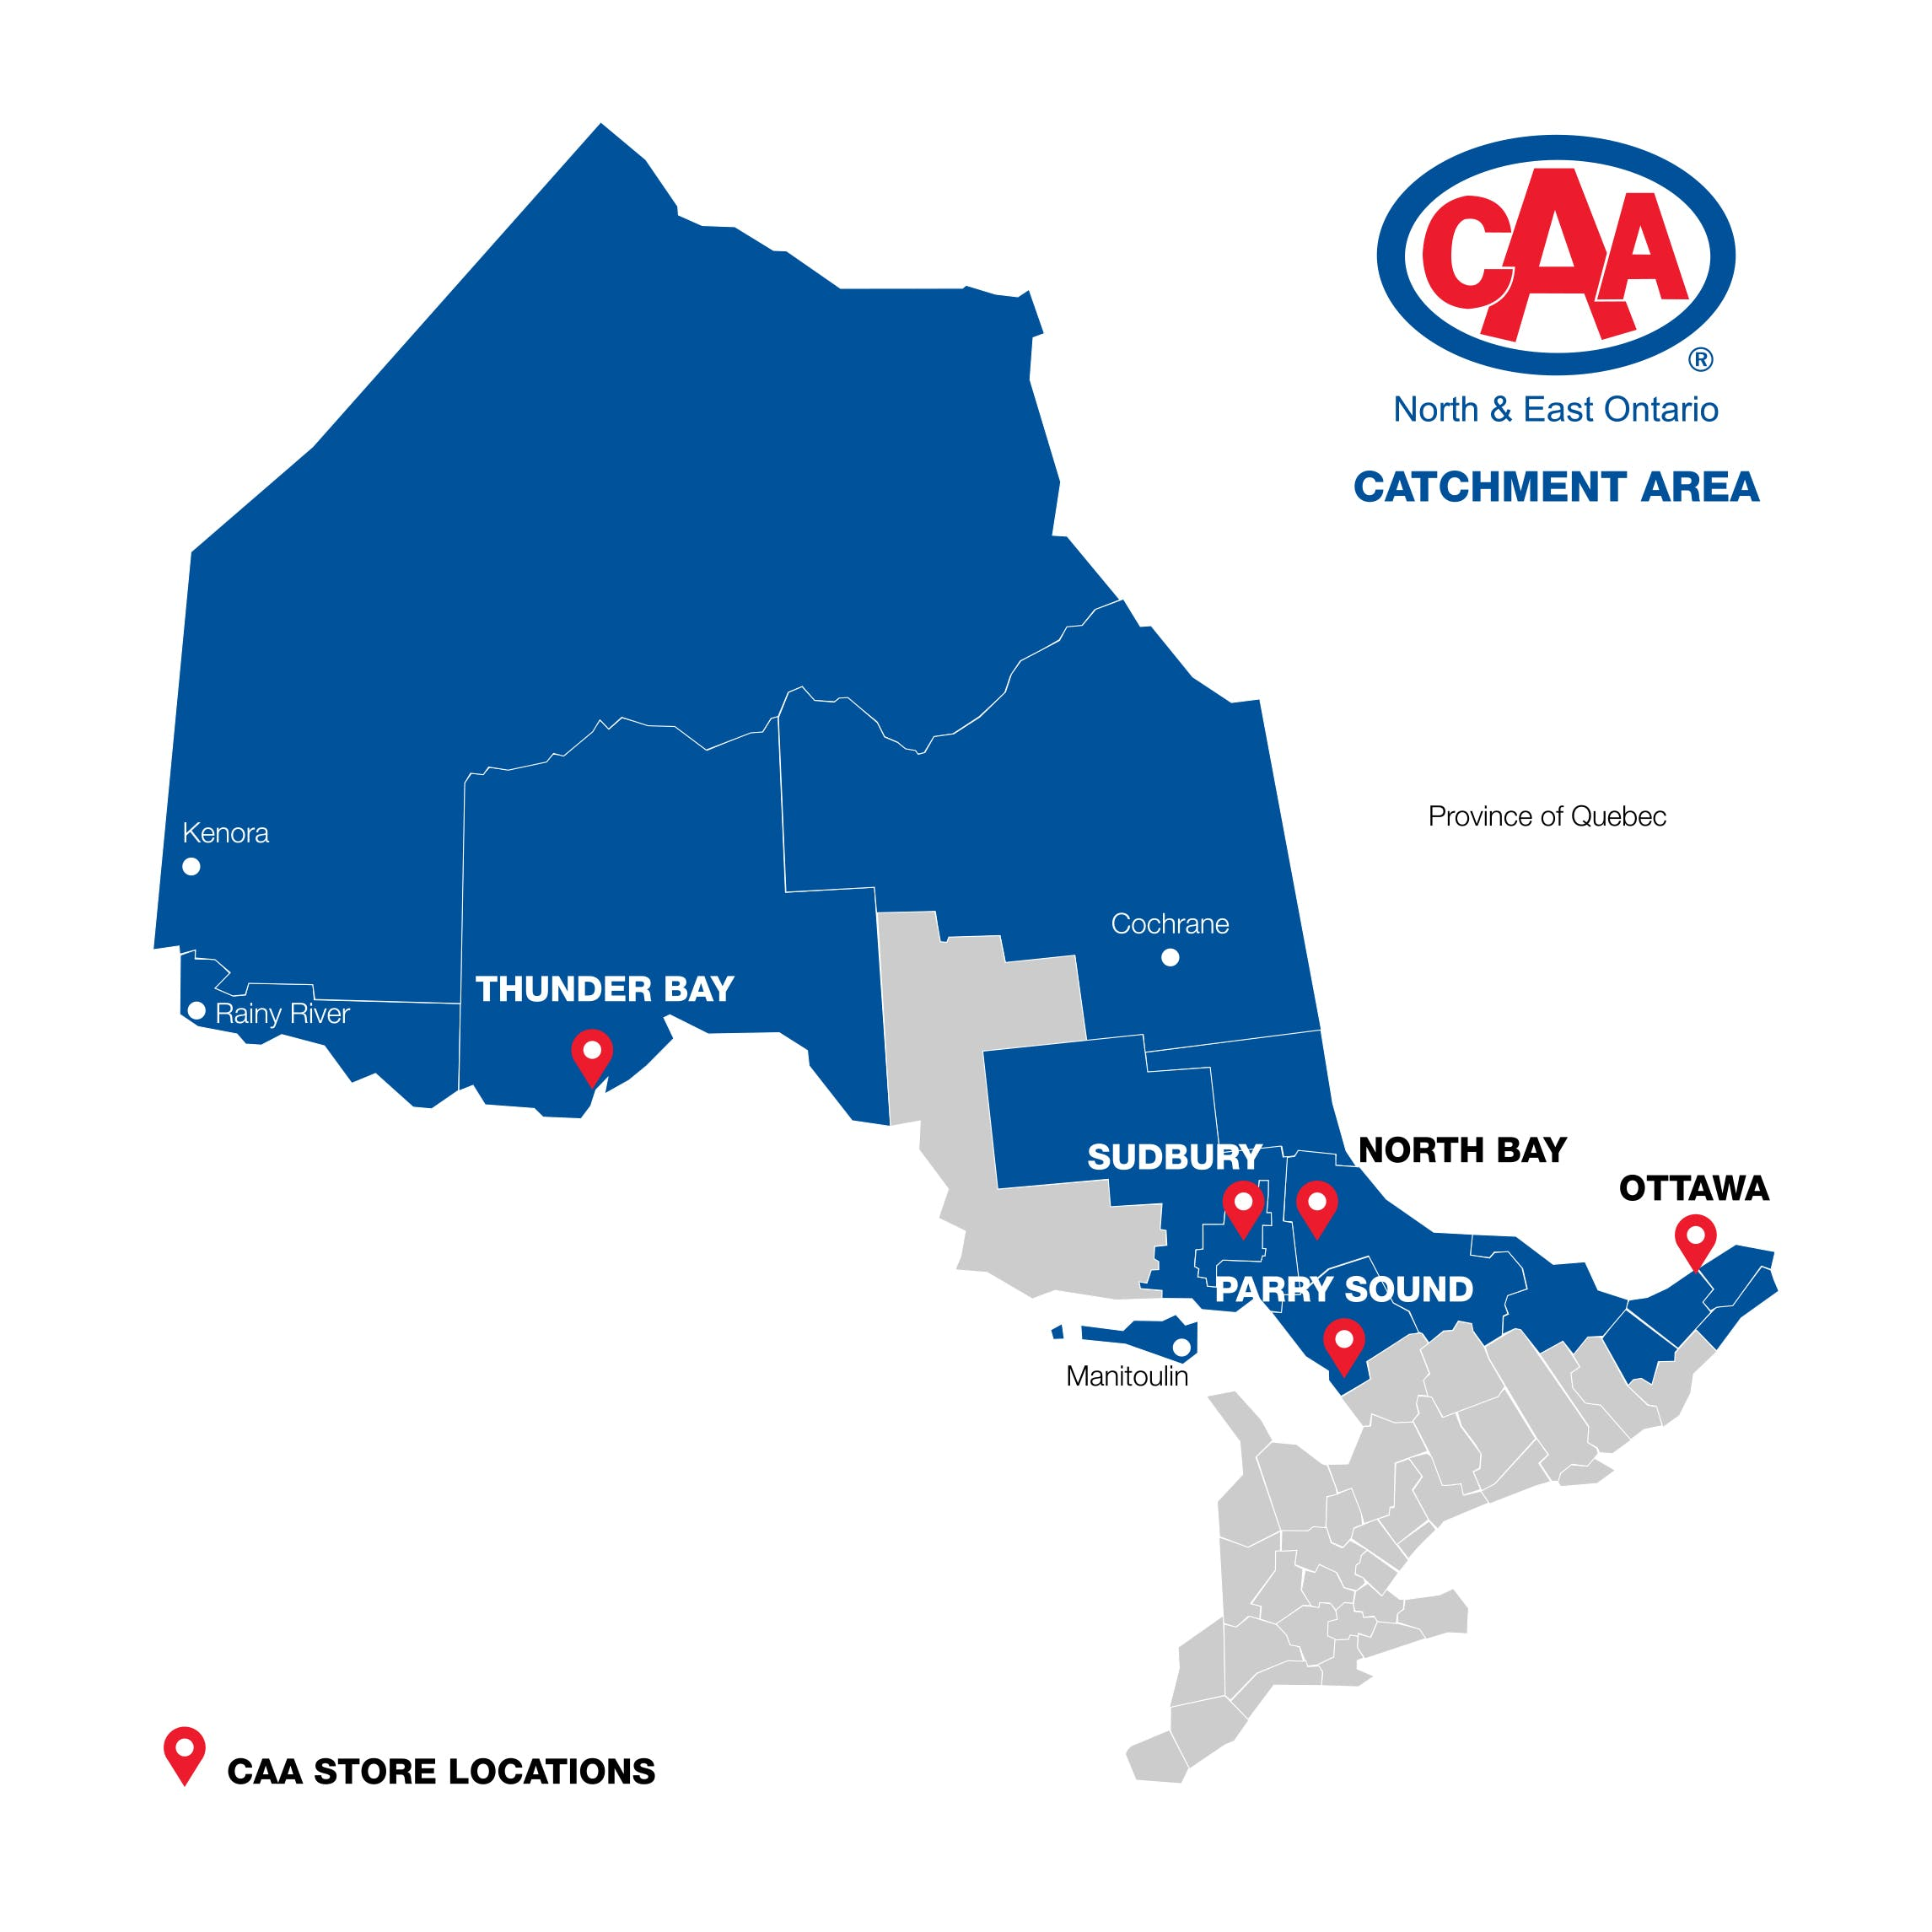 CAA North & East Ontario territory map